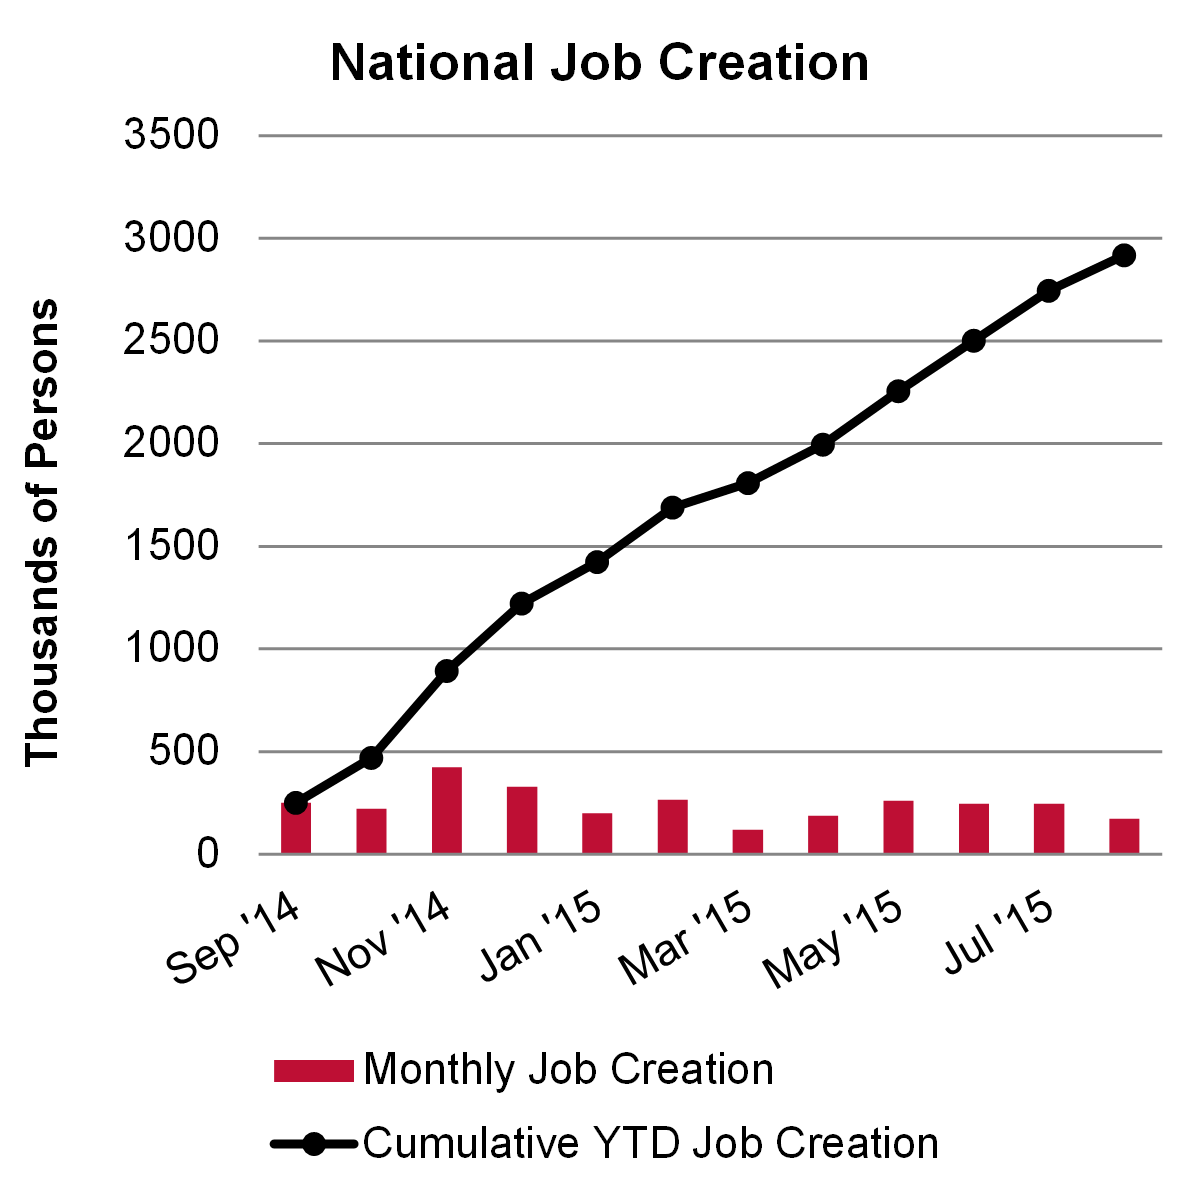 National Job Creation